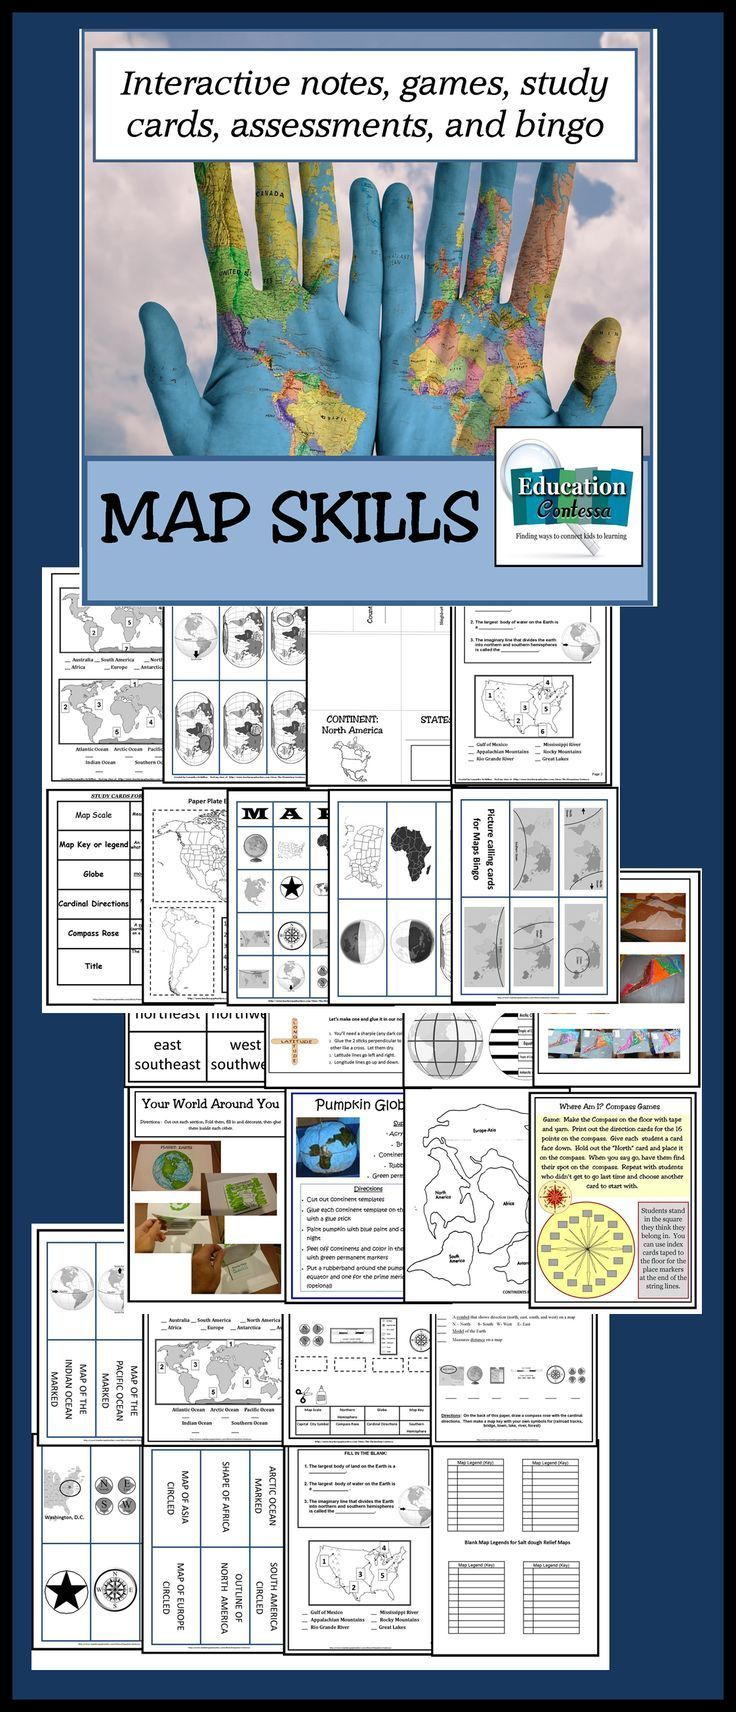 Best Ideas About Map Quiz On Pinterest Geography Map Quiz - World map quiz easy